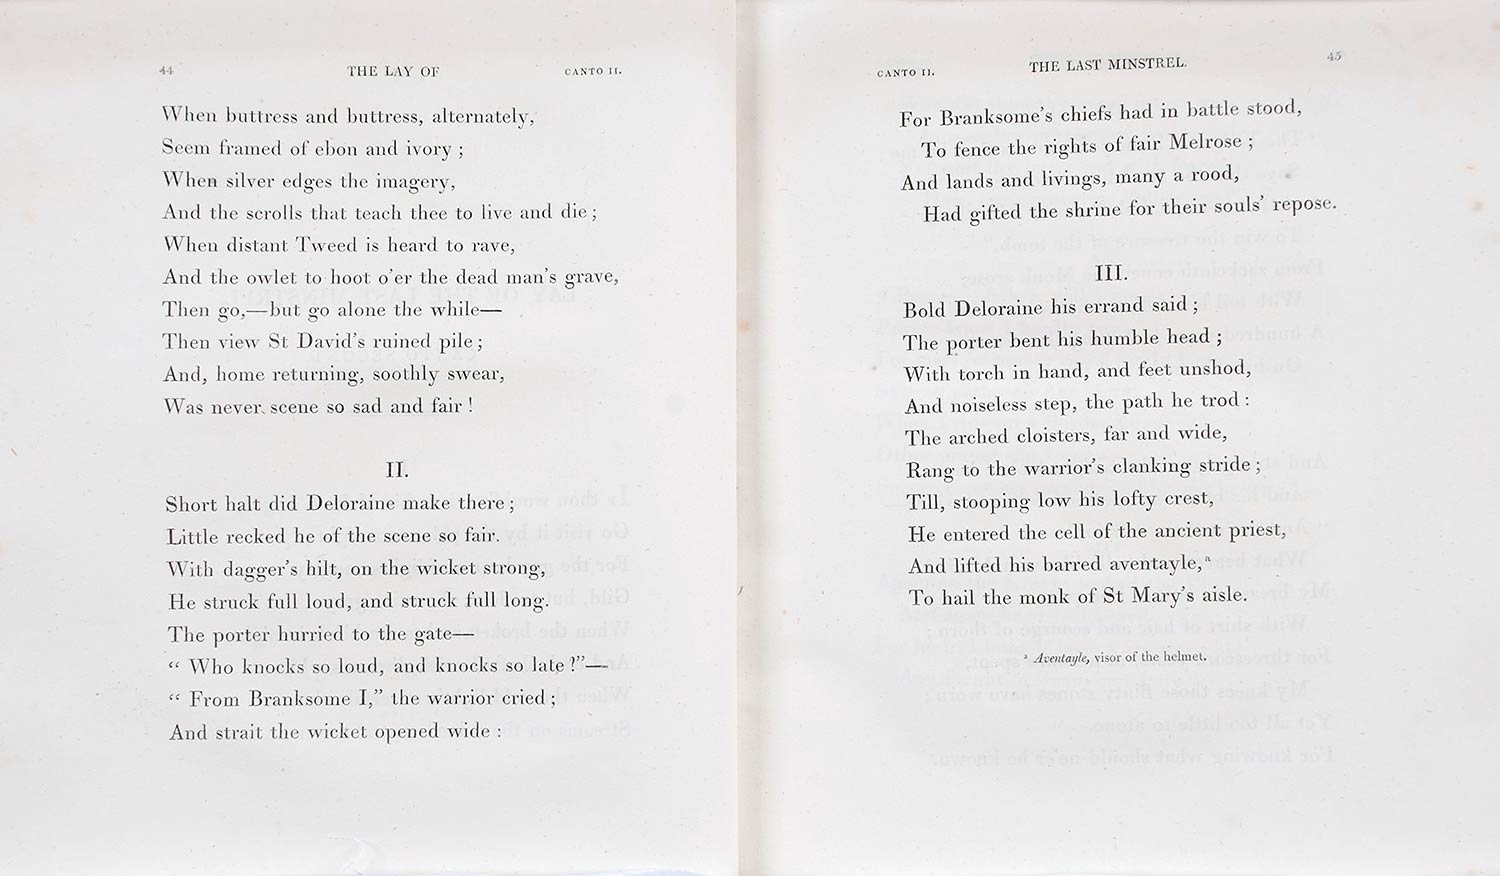 Sir Walter Scott. <em>The lay of the last minstrel: a poem with ballads and lyrical pieces.</em> 8th edition. London: Printed for Longman, Hurst, Rees and Orme, and A. Constable and Co., Edinburgh; by James Ballantyne and Co., Edinburgh, 1810.